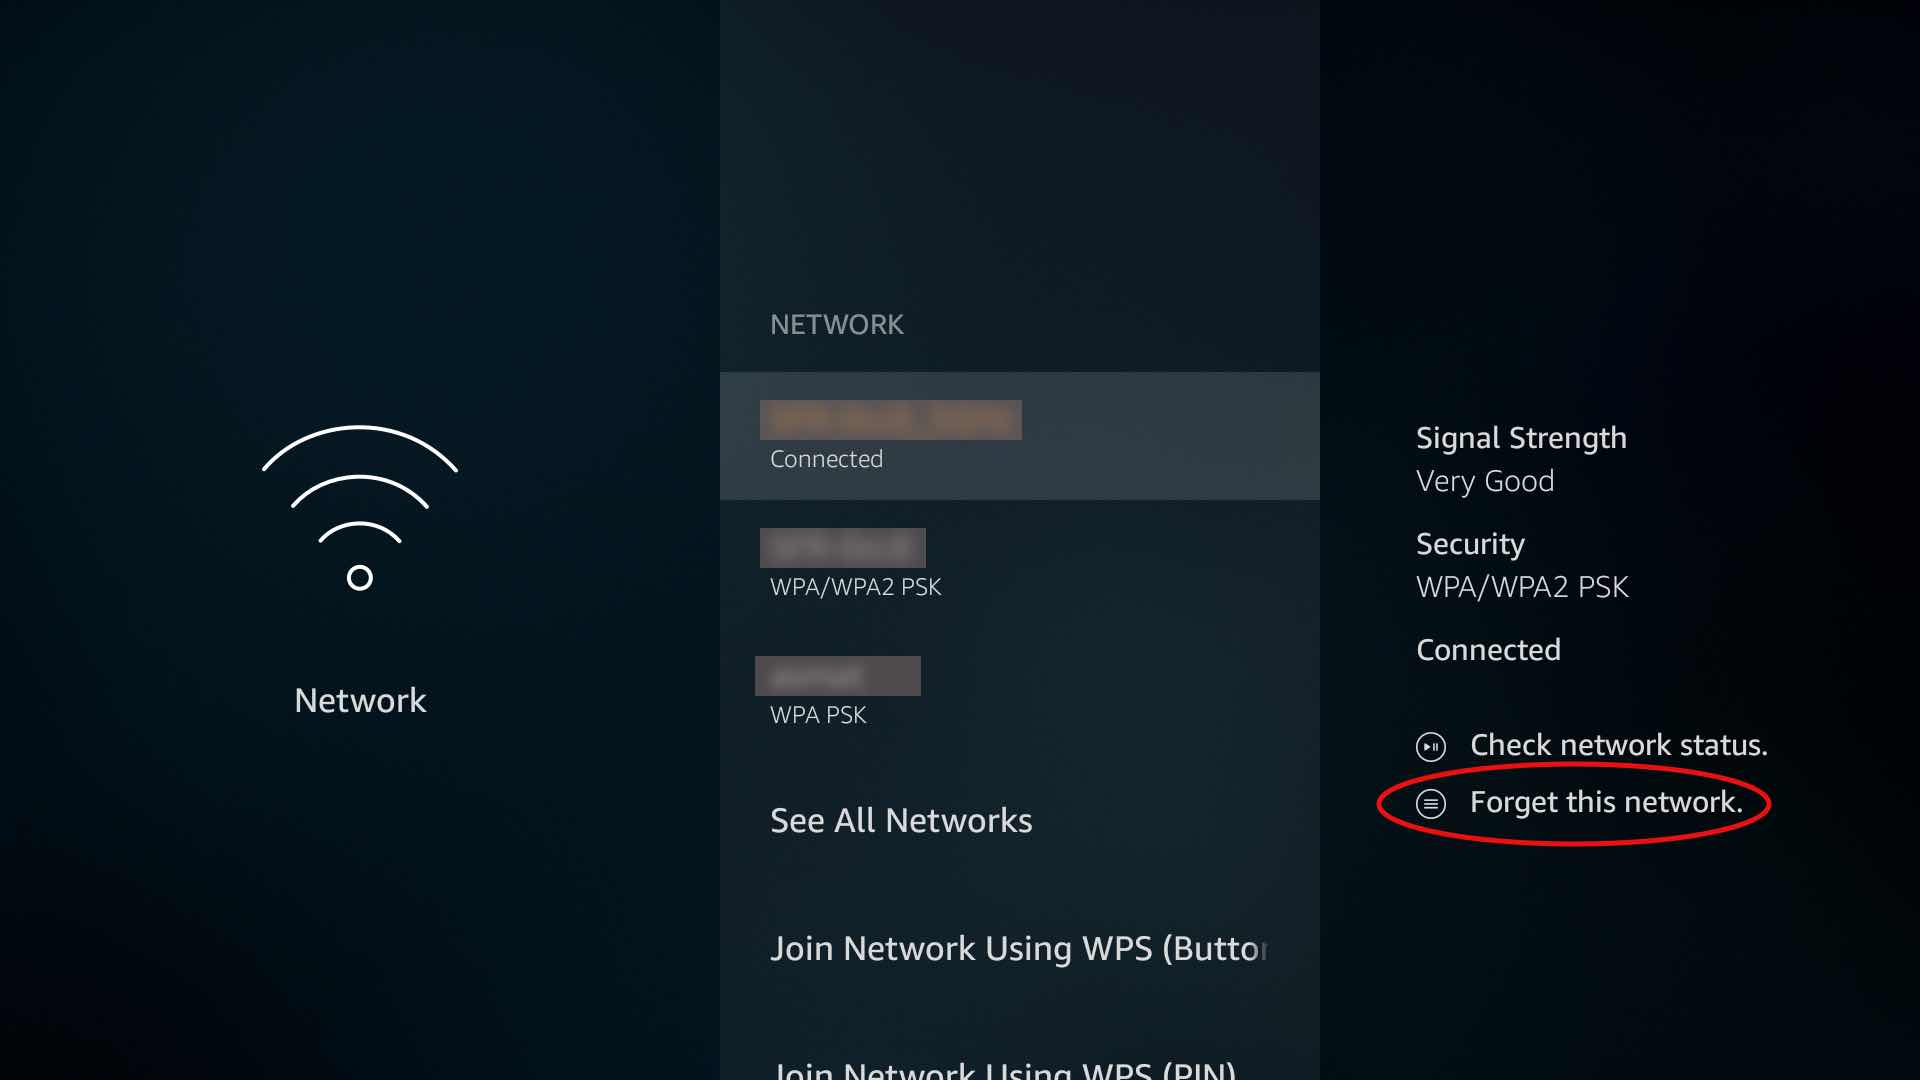 EN_FireTV-Settings_Network_Forget_this_network.jpg